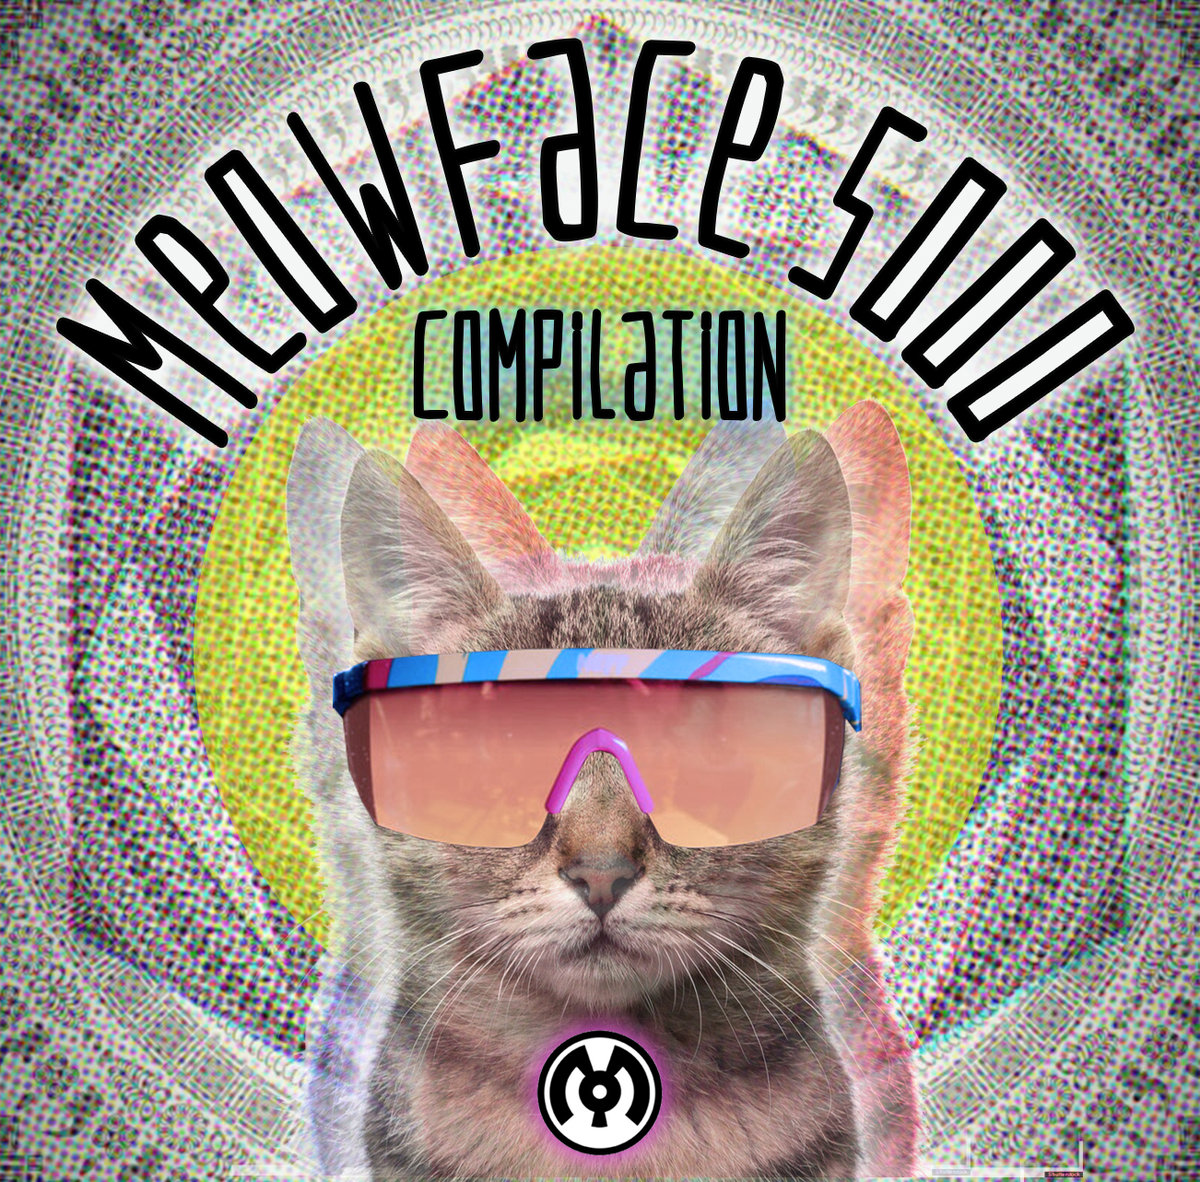 MC2 - Wesh Up (Paradigm Theorem Remix) @ 'MeowFace 5000' album (electronic, dubstep)